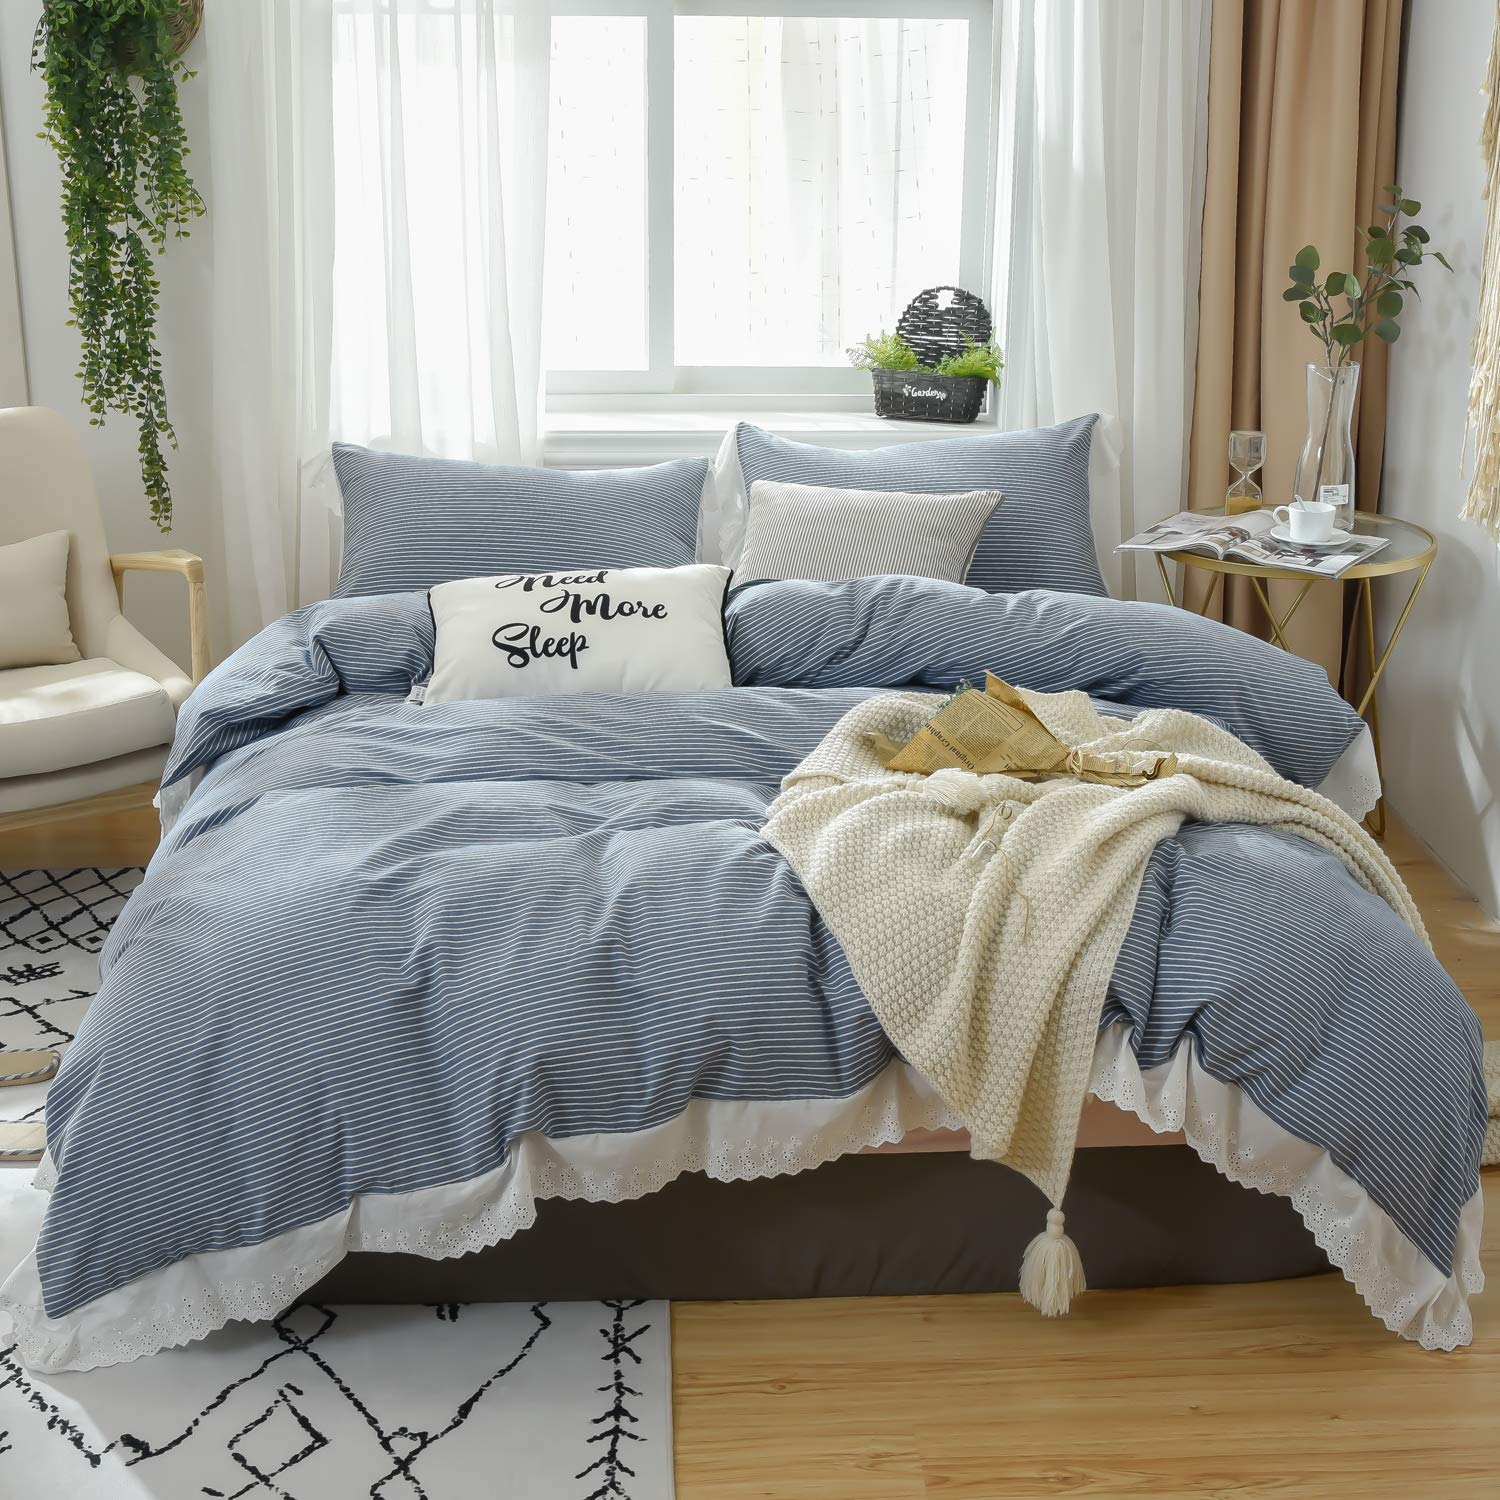 Softta California King Bedding Ruffle Striped Duvet Cover 3 Pcs Farmhouse Vintage White and Navy Blue 100% Washed Cotton Tassel Princess Girls Bedding with Zipper Ties 1 Duvet Cover + 2 Pillow Shams